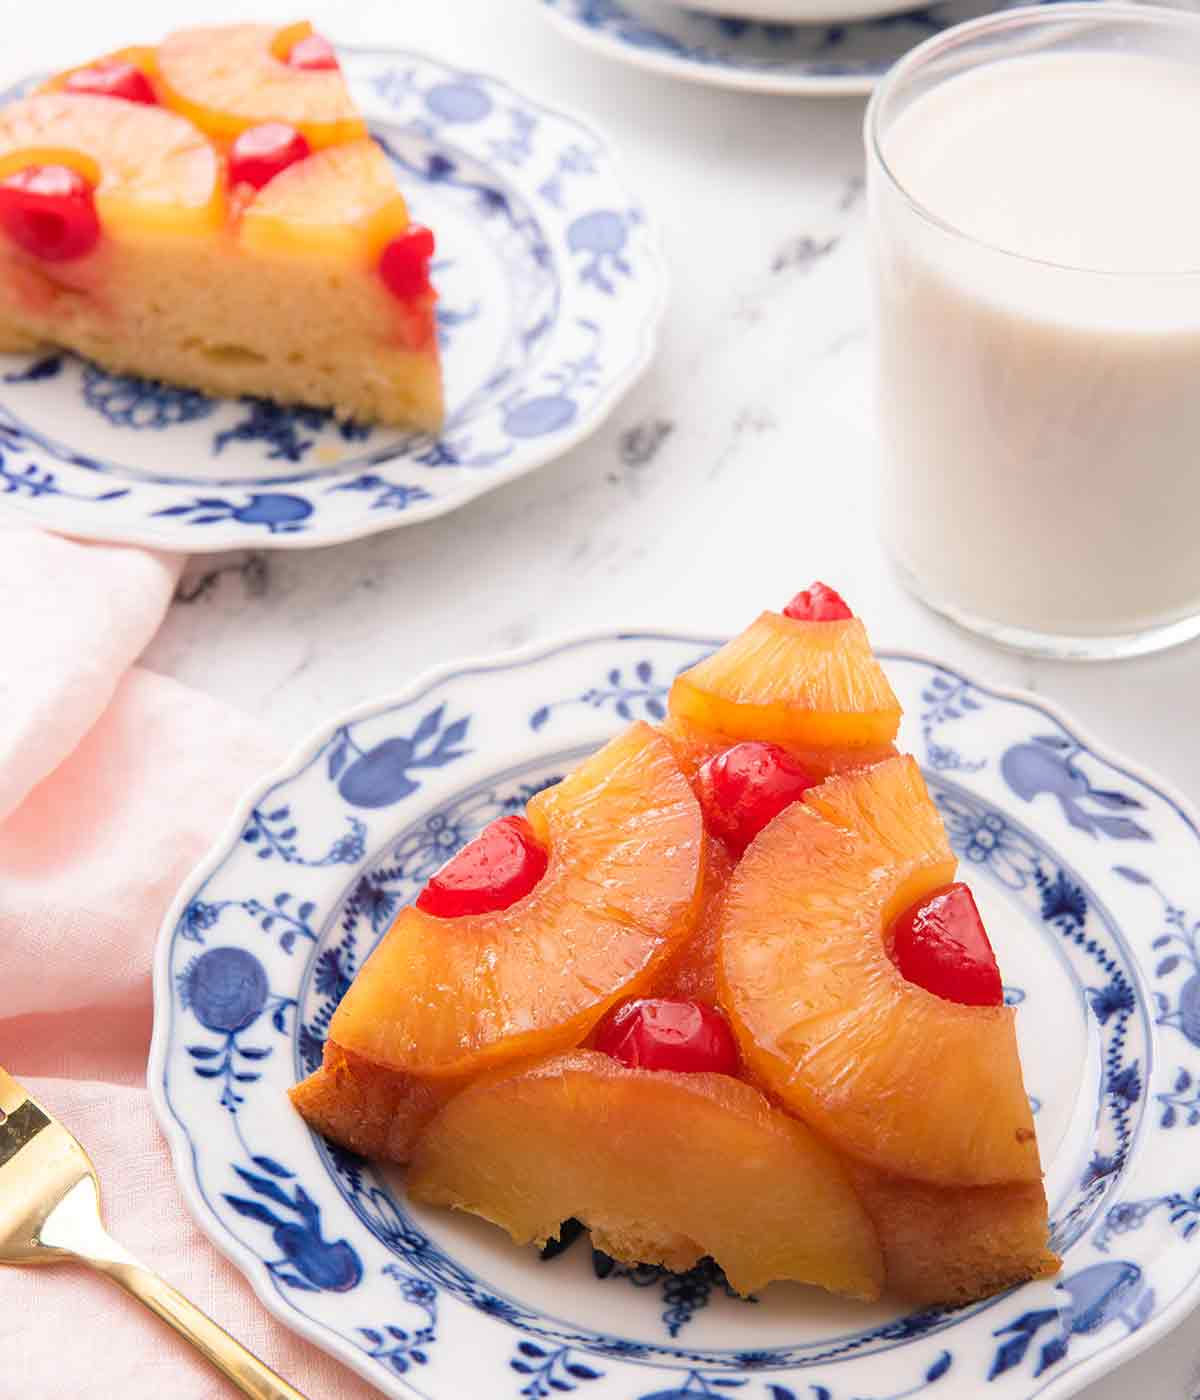 Two slices of pineapple upside down cake on blue and white plates with one in the foreground.